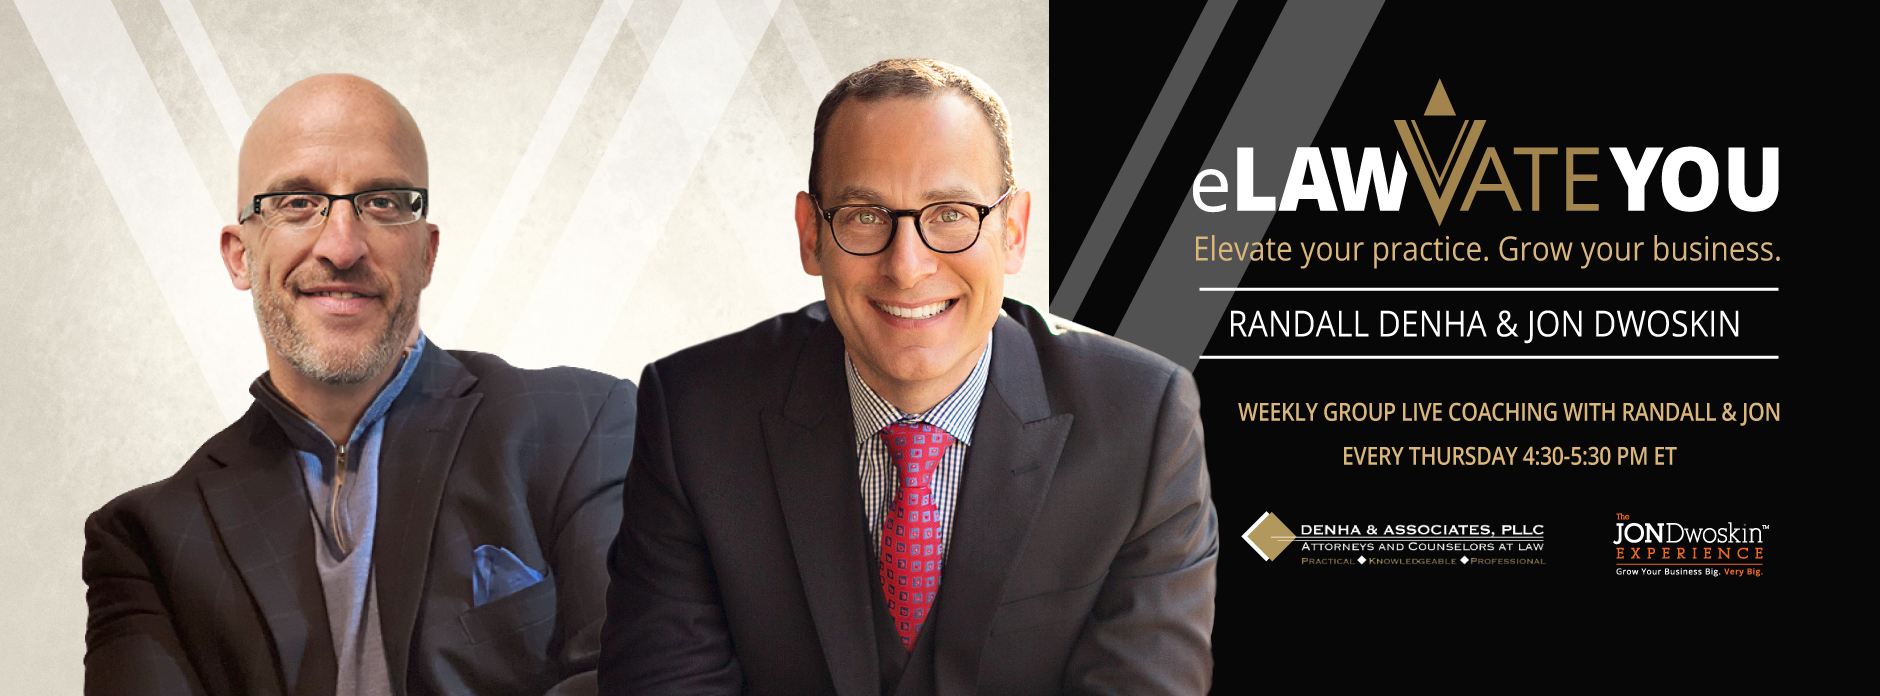 eLAWvateYOU Private Coaching Group